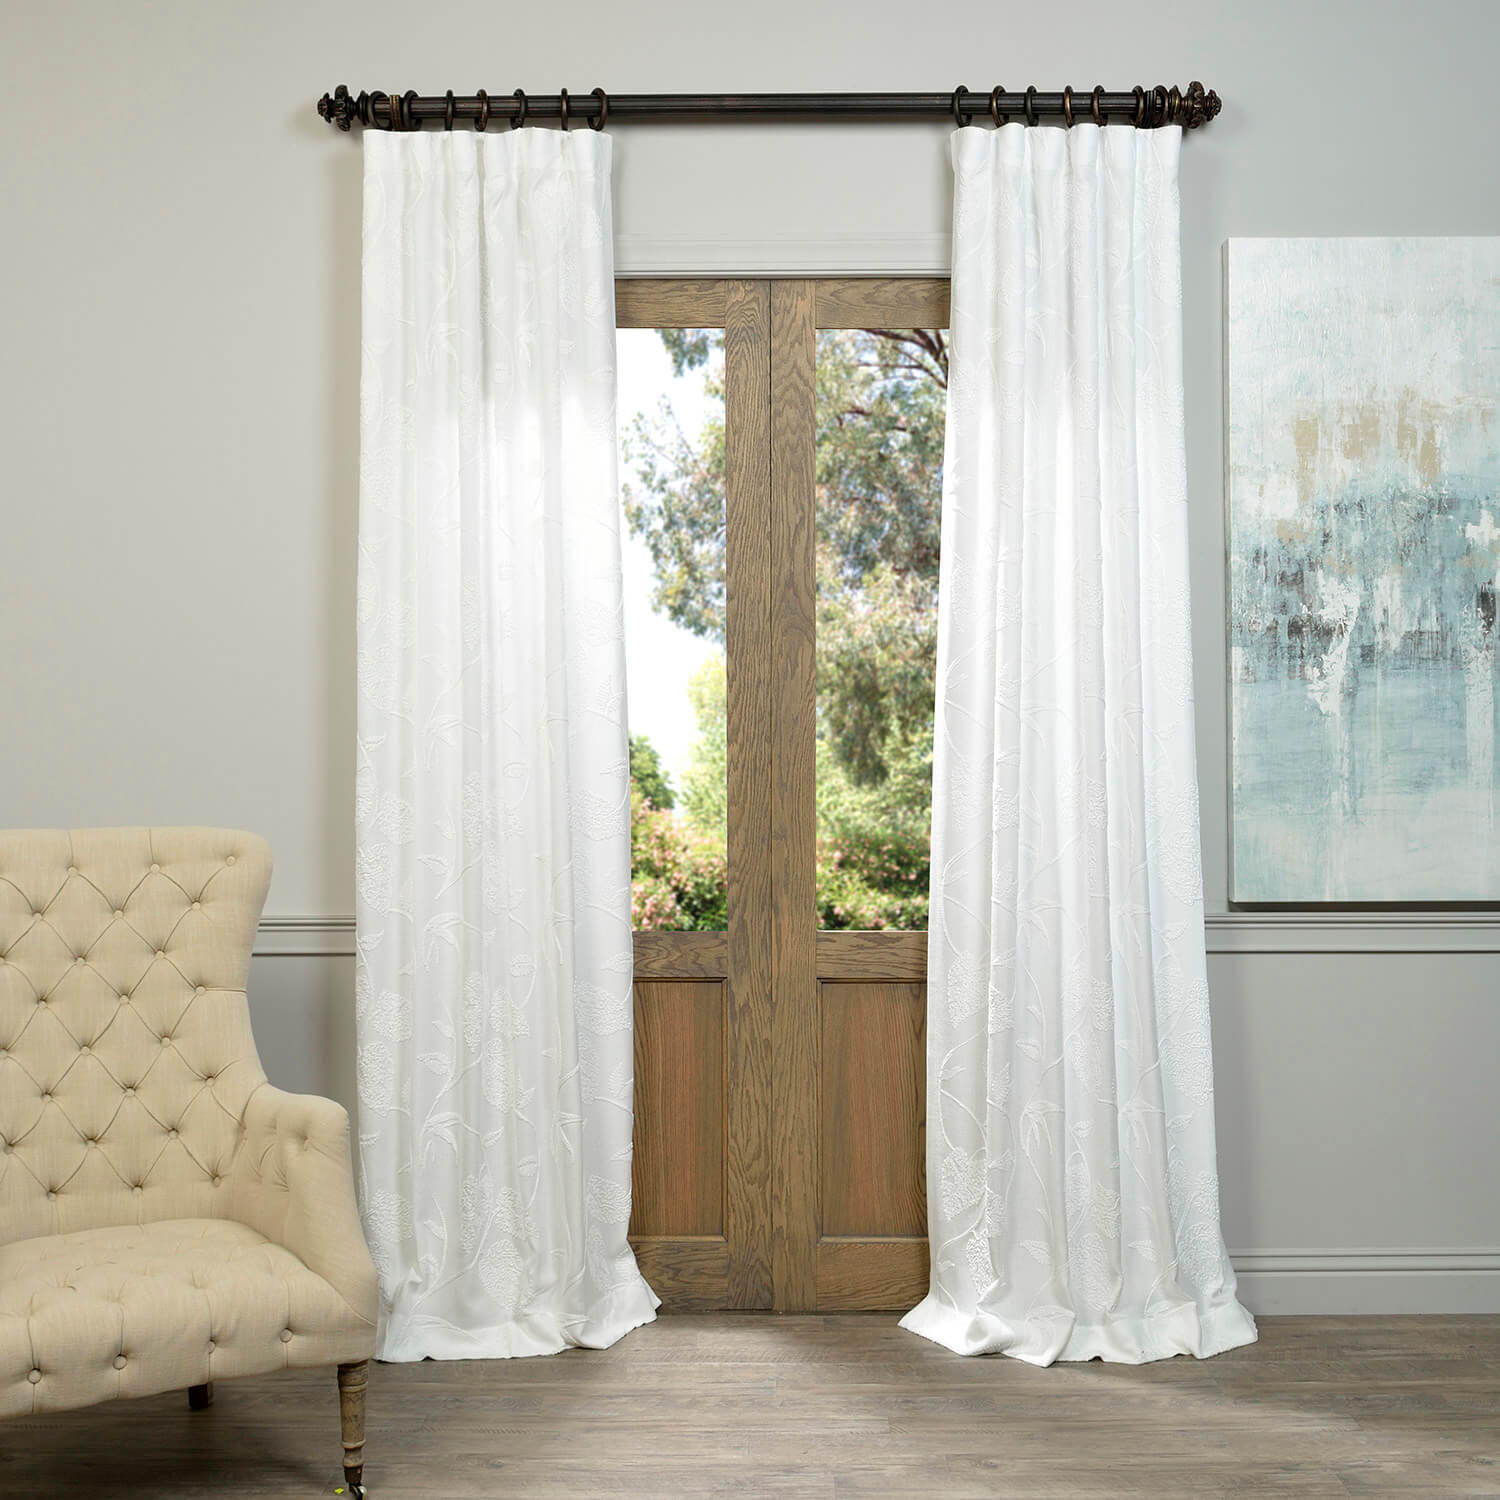 Vine White Embroidered Crewel Faux Linen Curtain